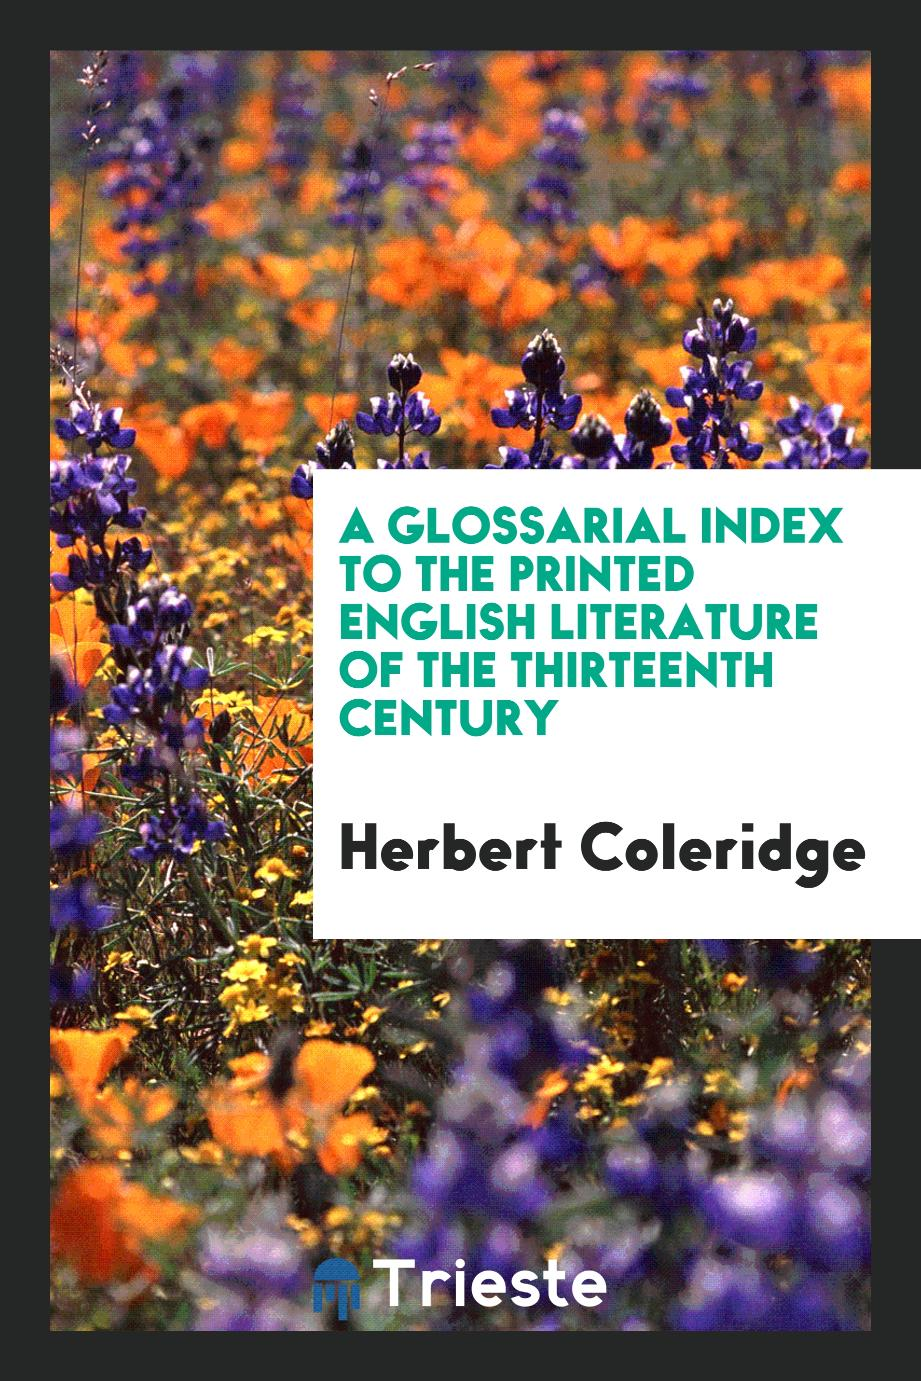 A Glossarial Index to the Printed English Literature of the Thirteenth Century